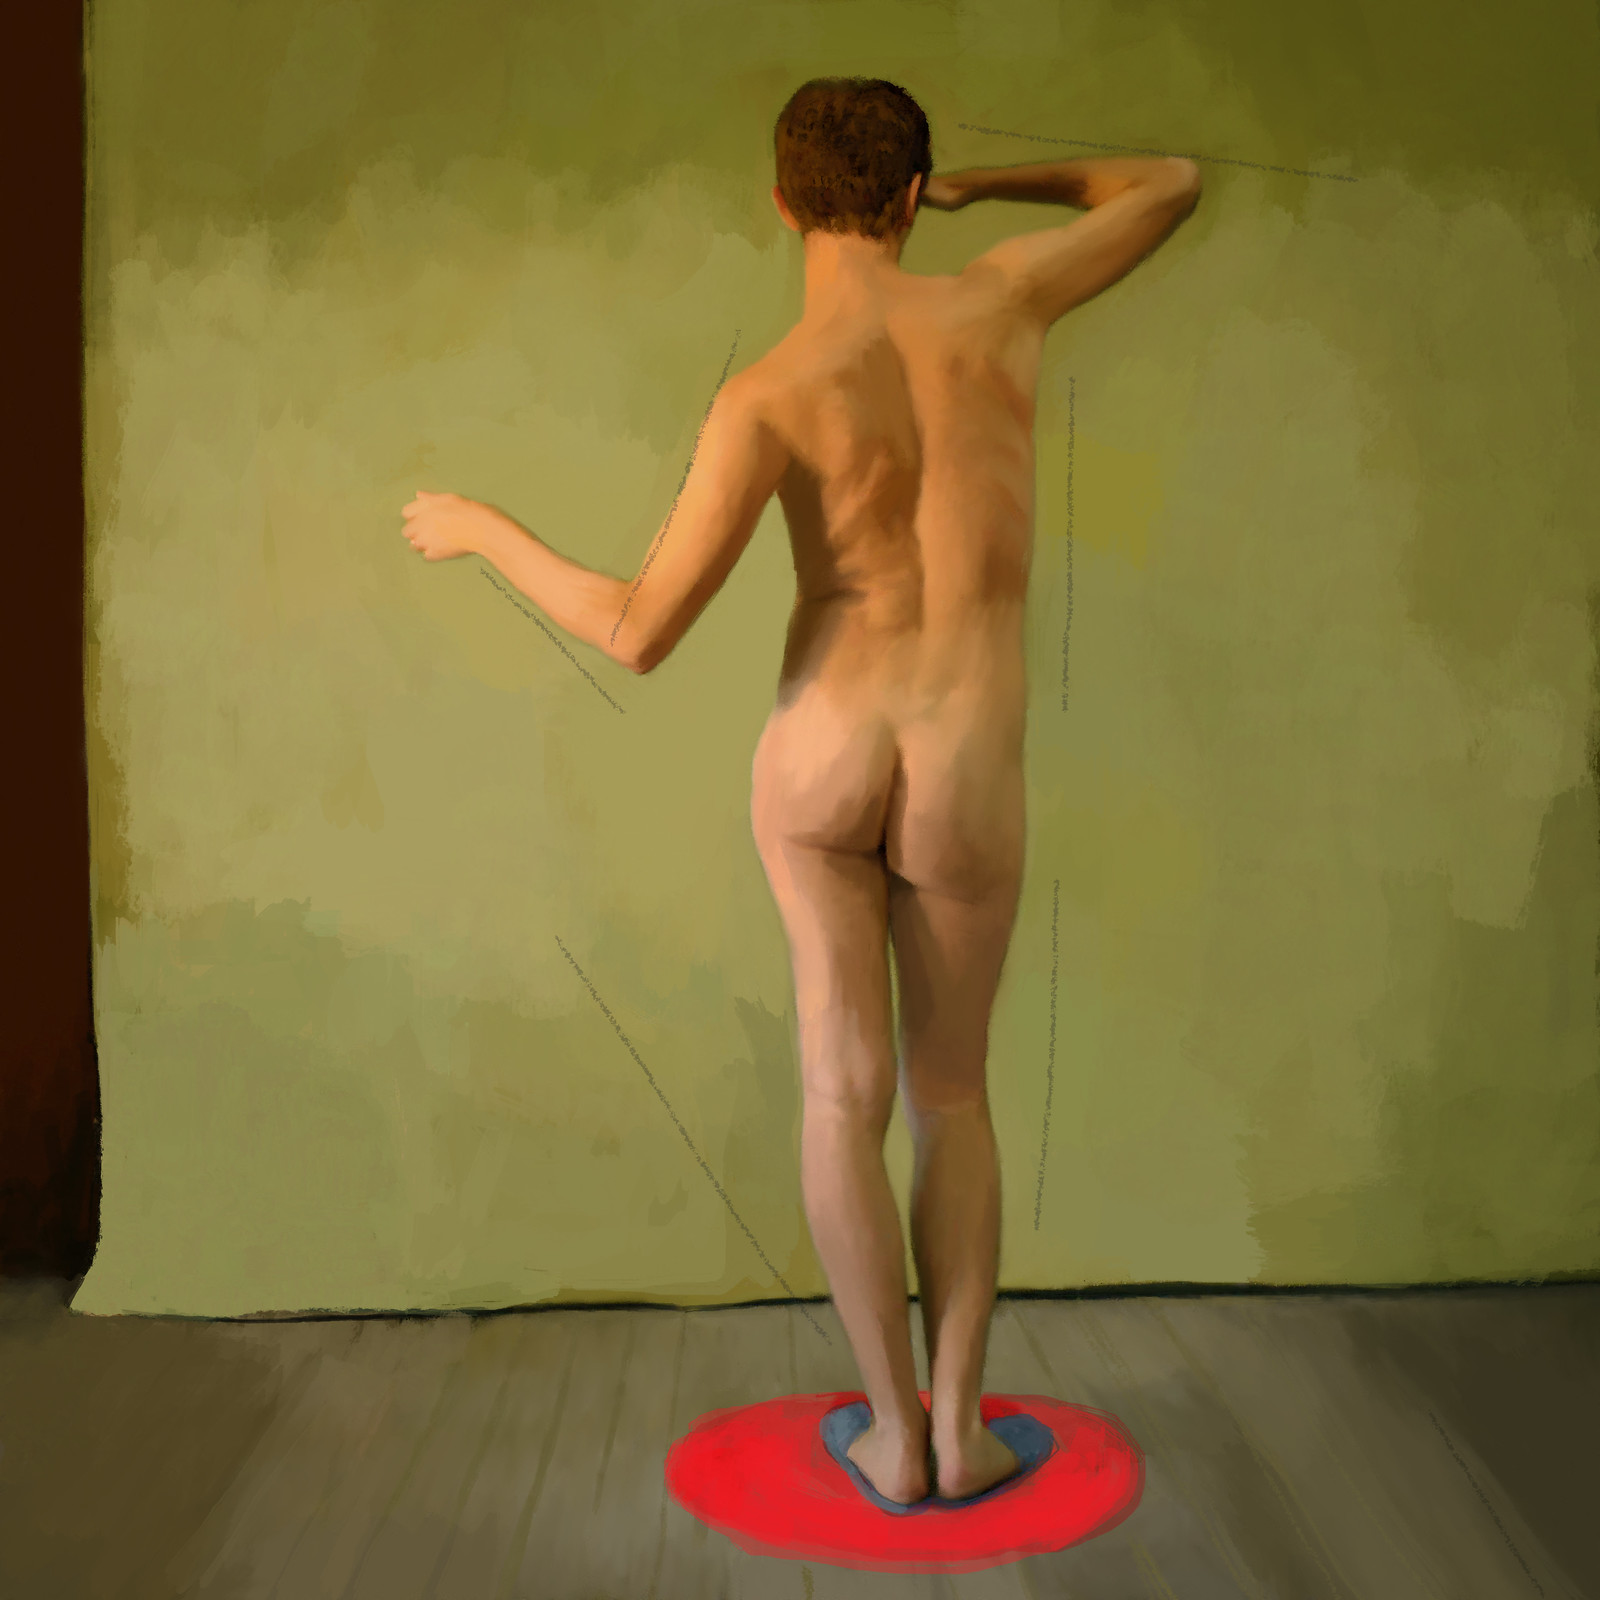 Man in Blue Slippers Standing on Red Rug